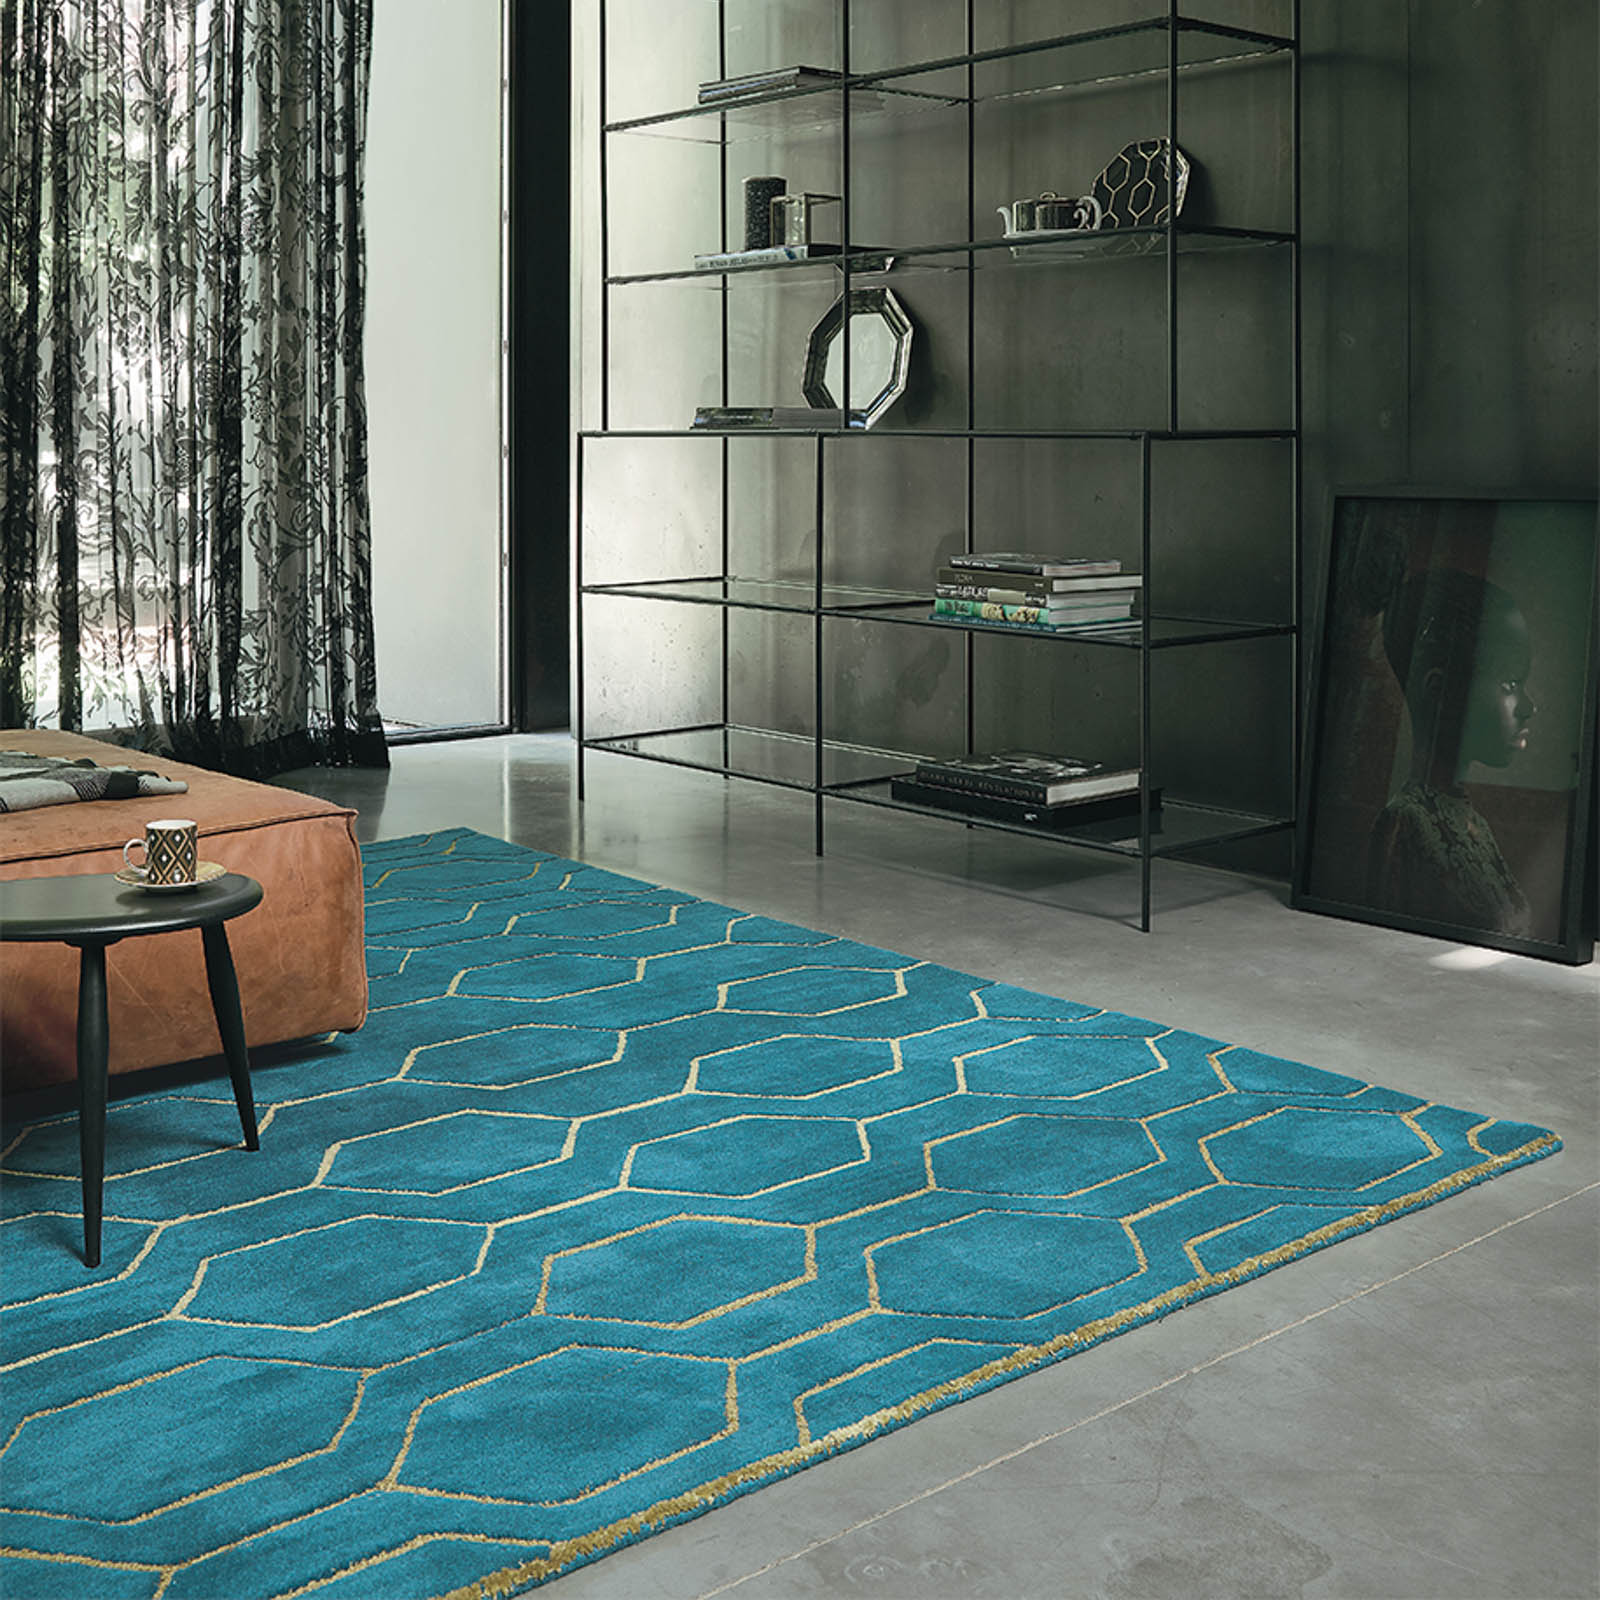 Arris Rugs 37307 in Teal and Gold by Wedgwood